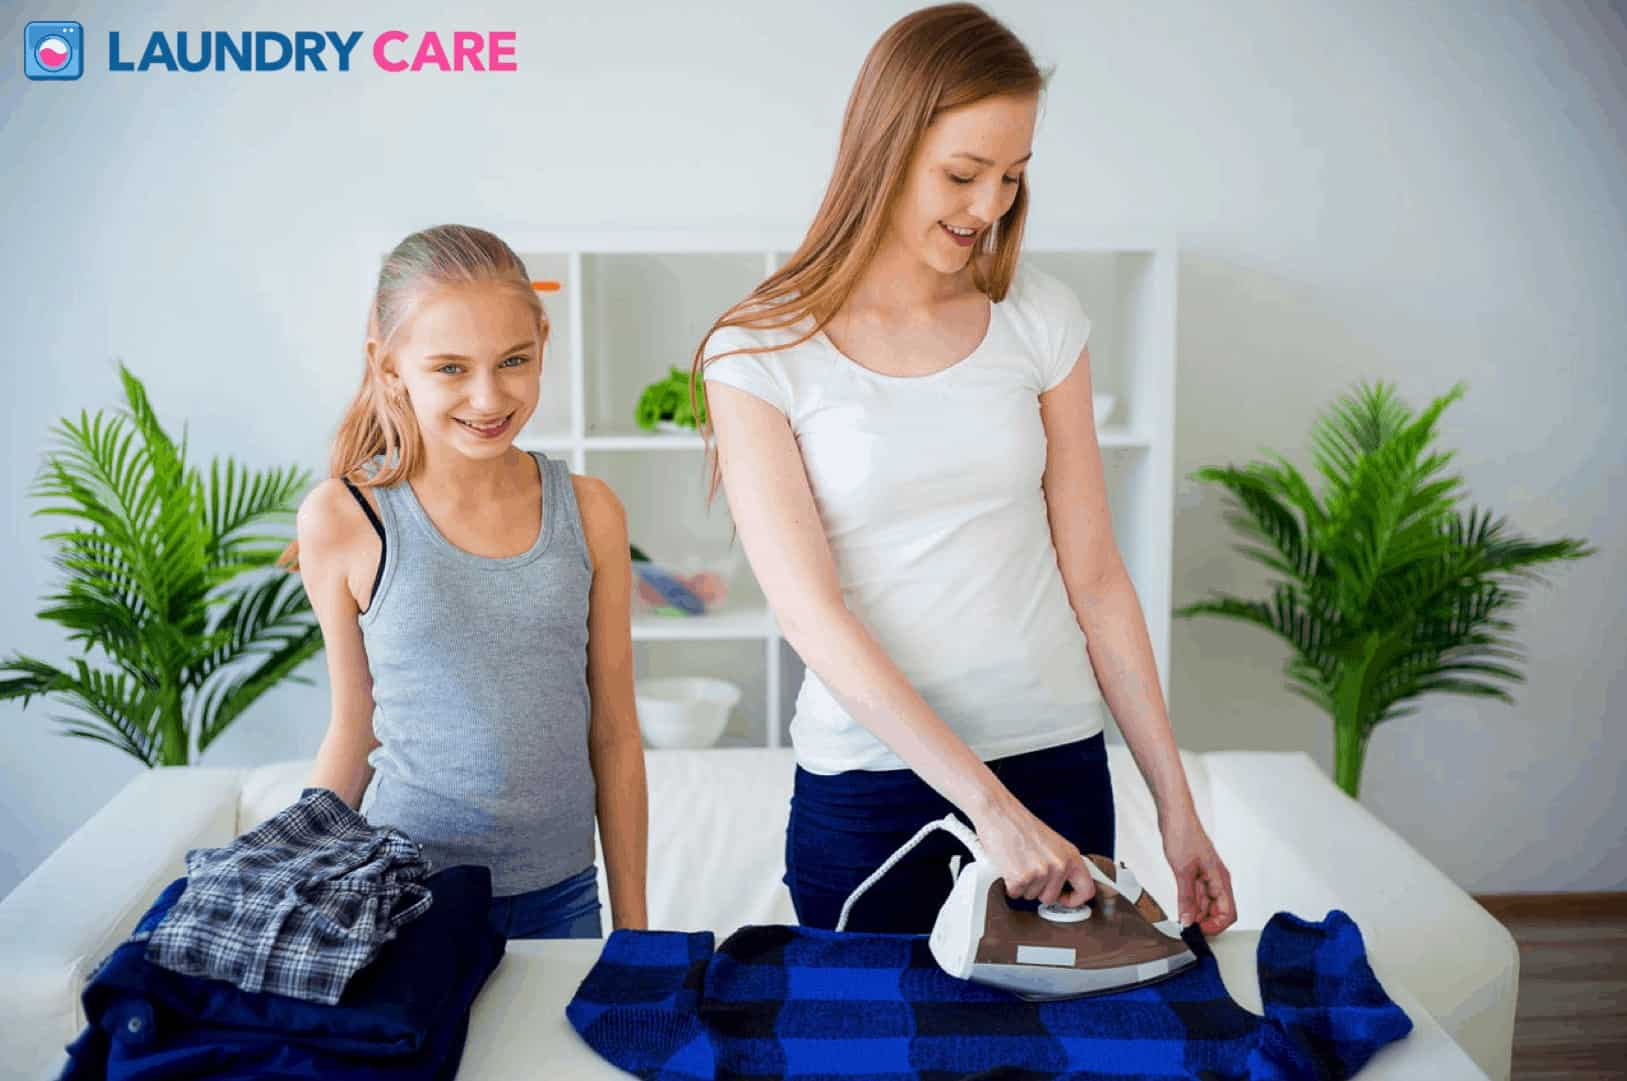 Start Your Own Laundry Business with Laundry Care 1